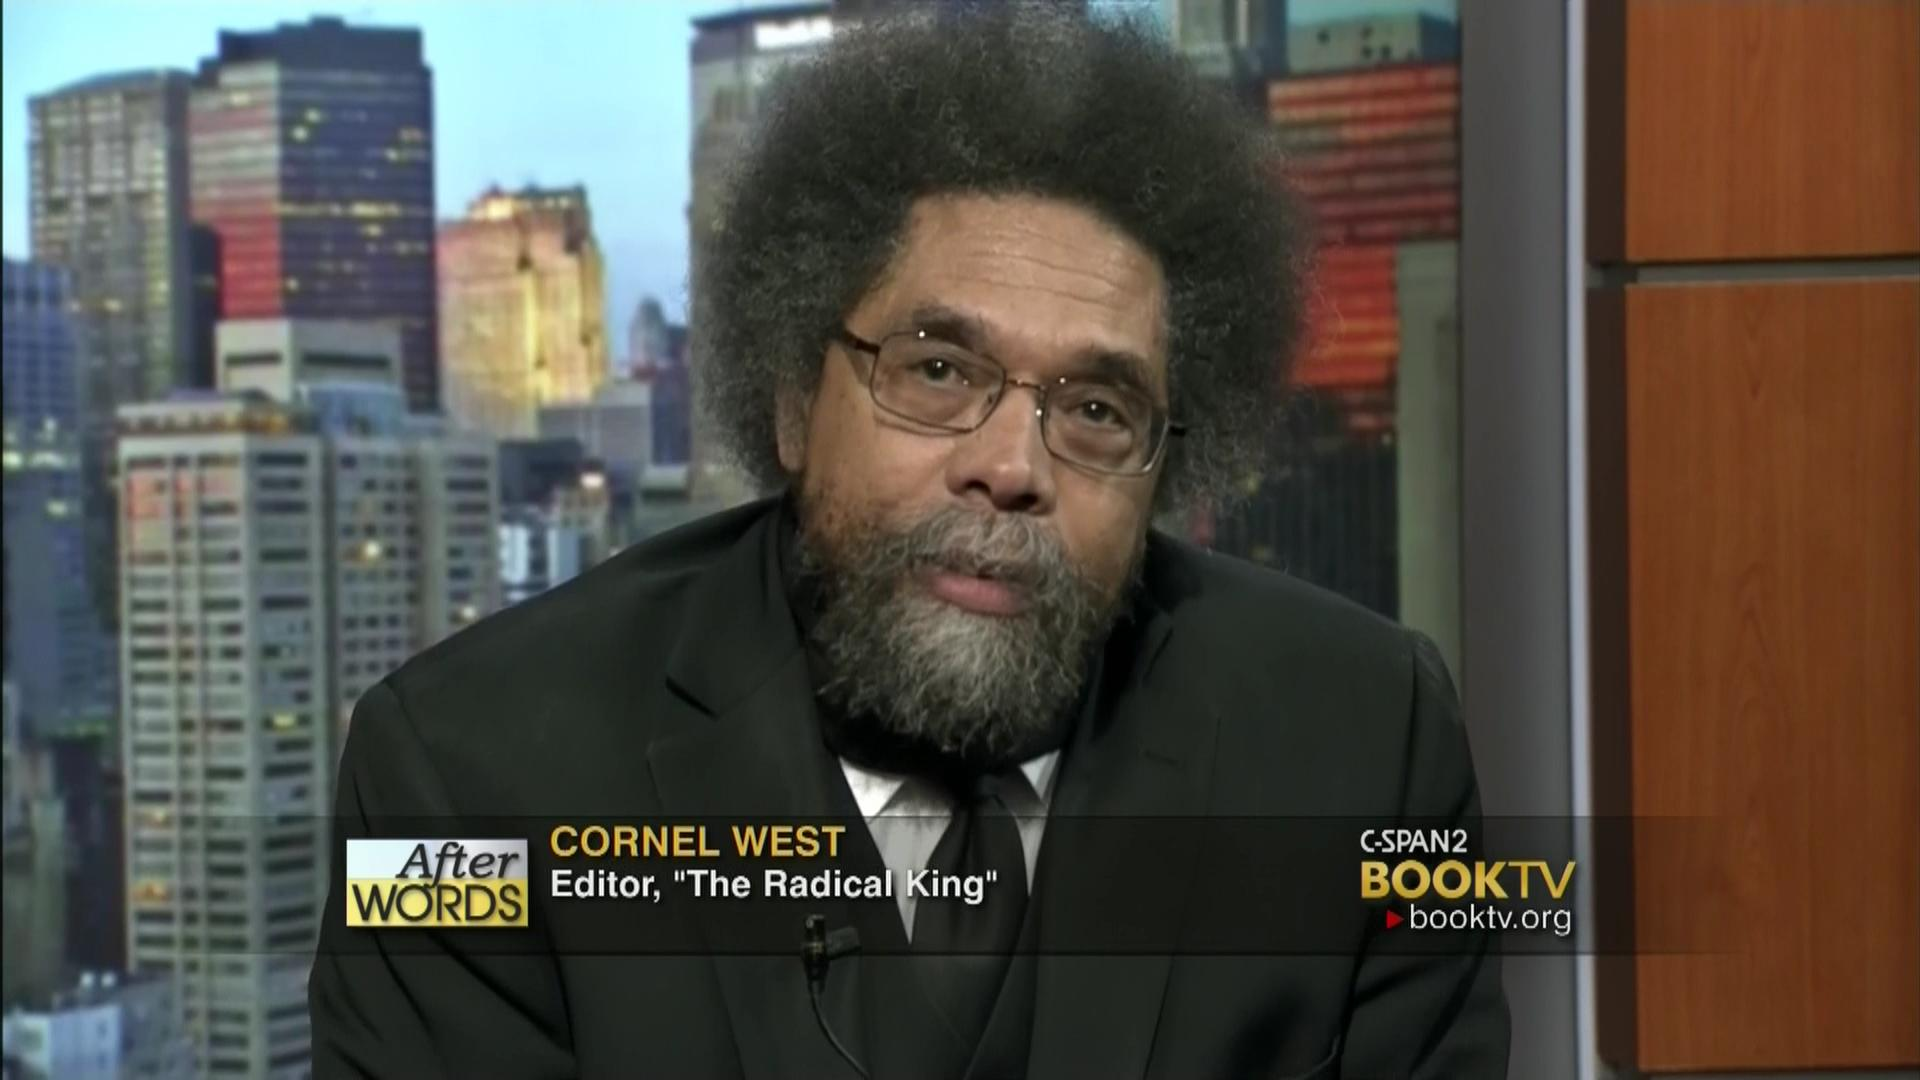 words cornel west video c span org